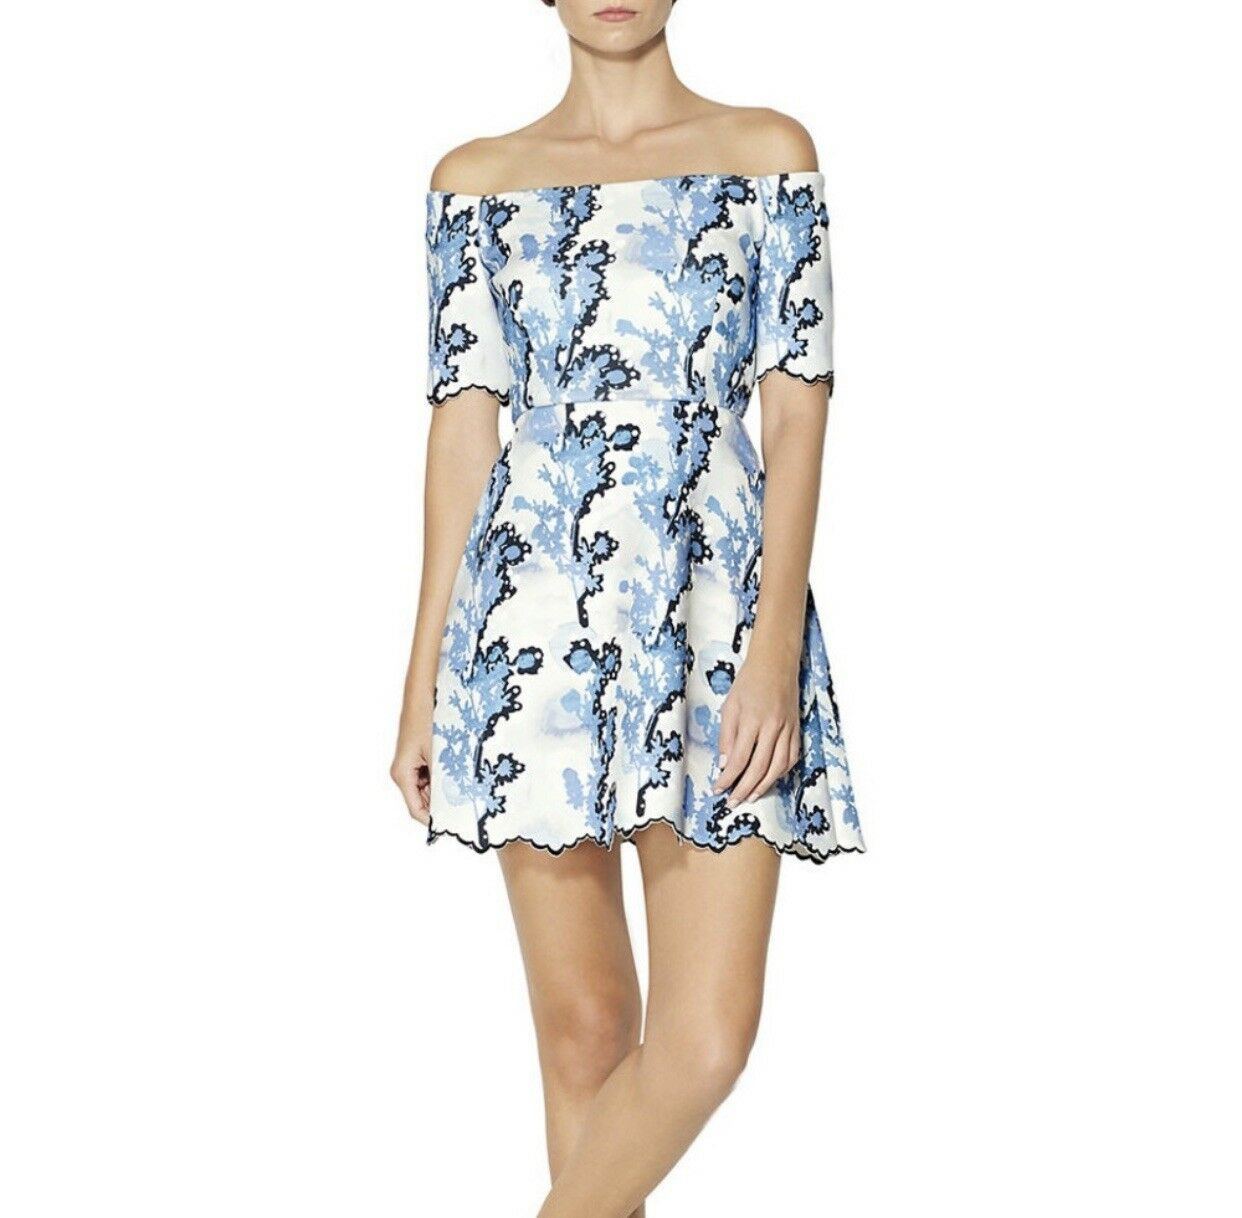 Cynthia Rowley Women's Off the Shoulder Dress Size 0 - bluee Floral